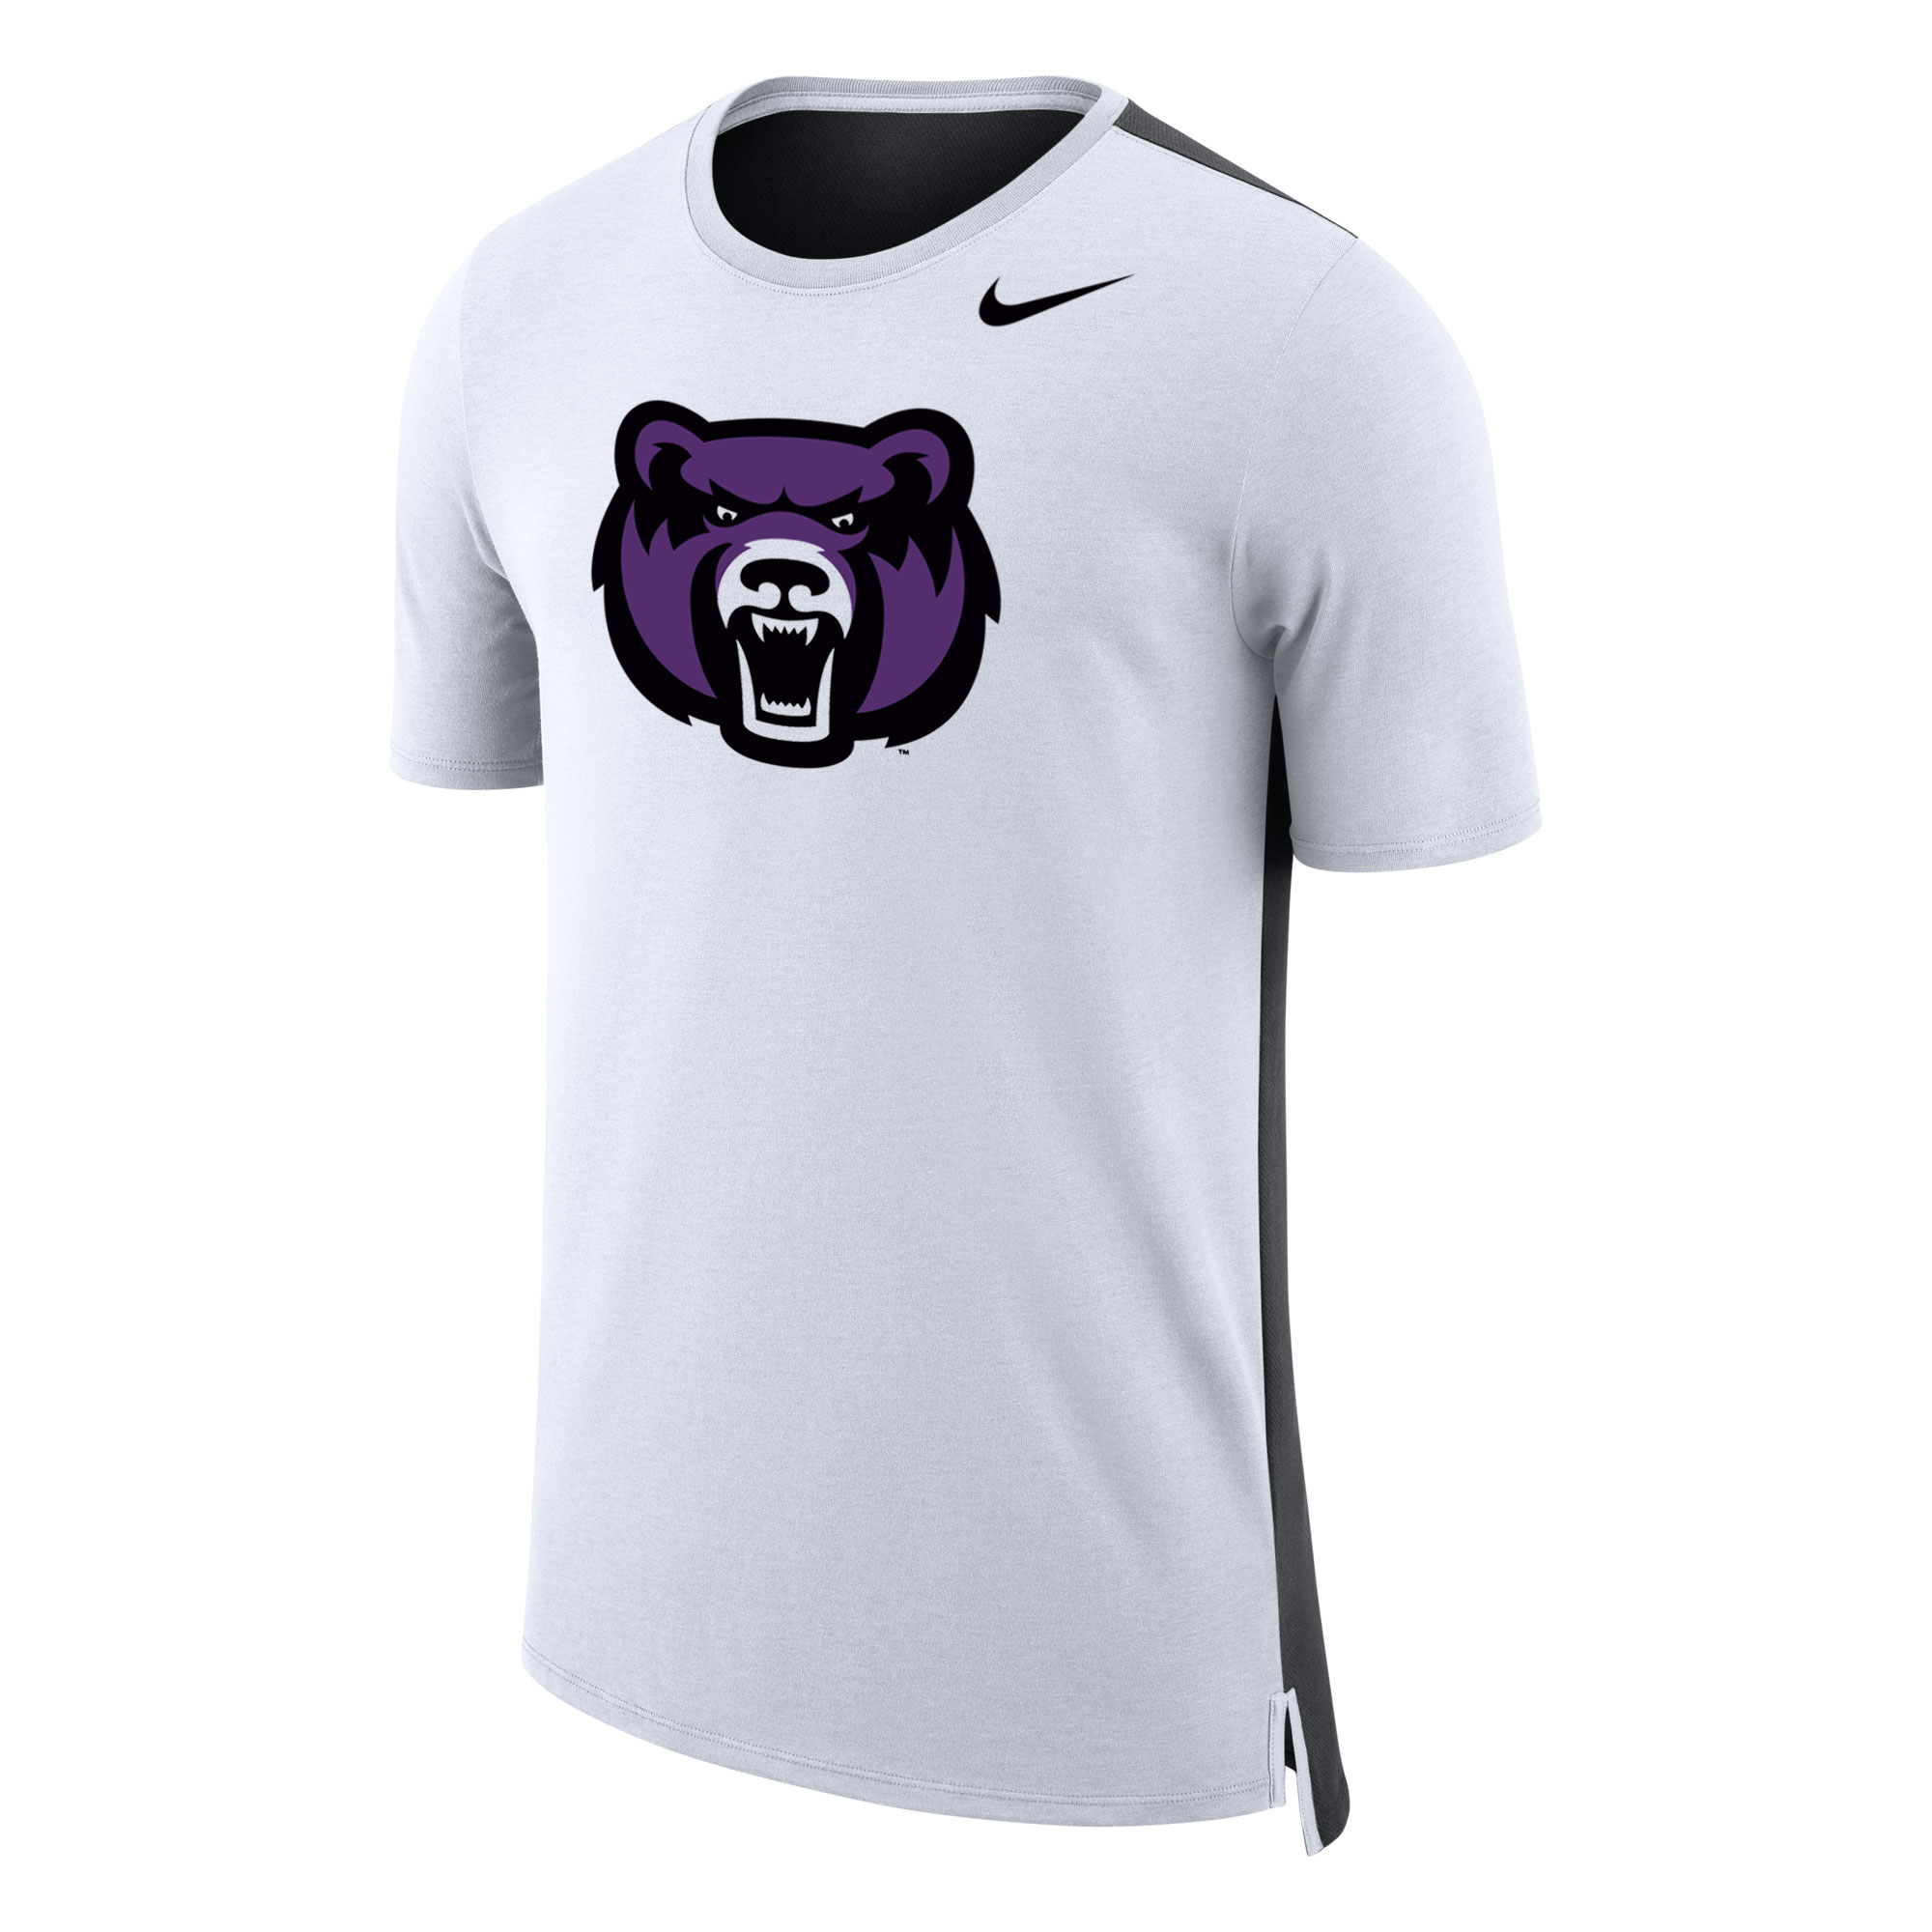 Bearhead Dry Travel Tee